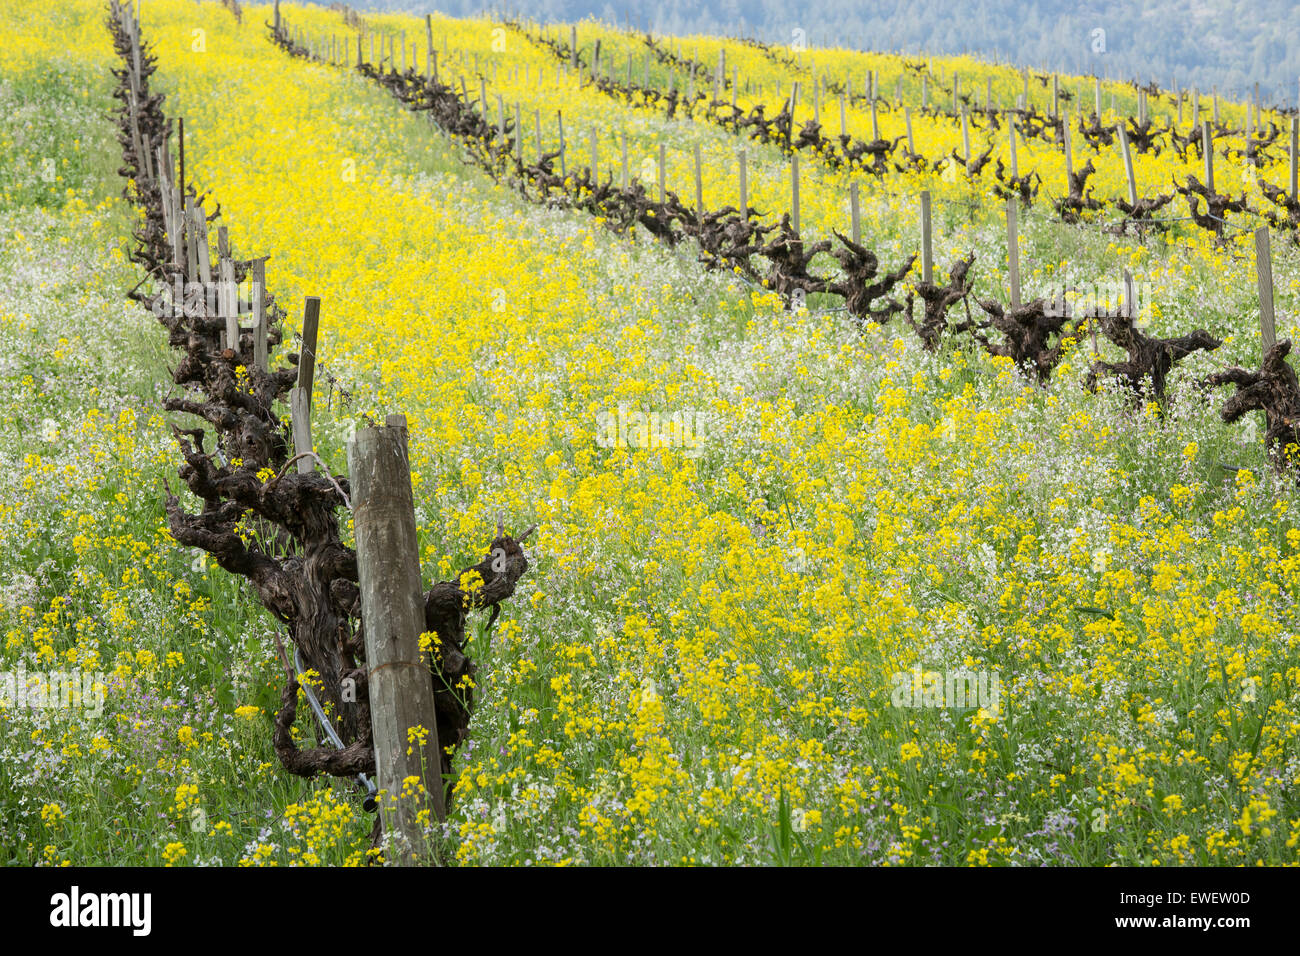 Rolling hillside in Sonoma Valley with old grapevines, mustard flowers and other wildflowers, California - Stock Image